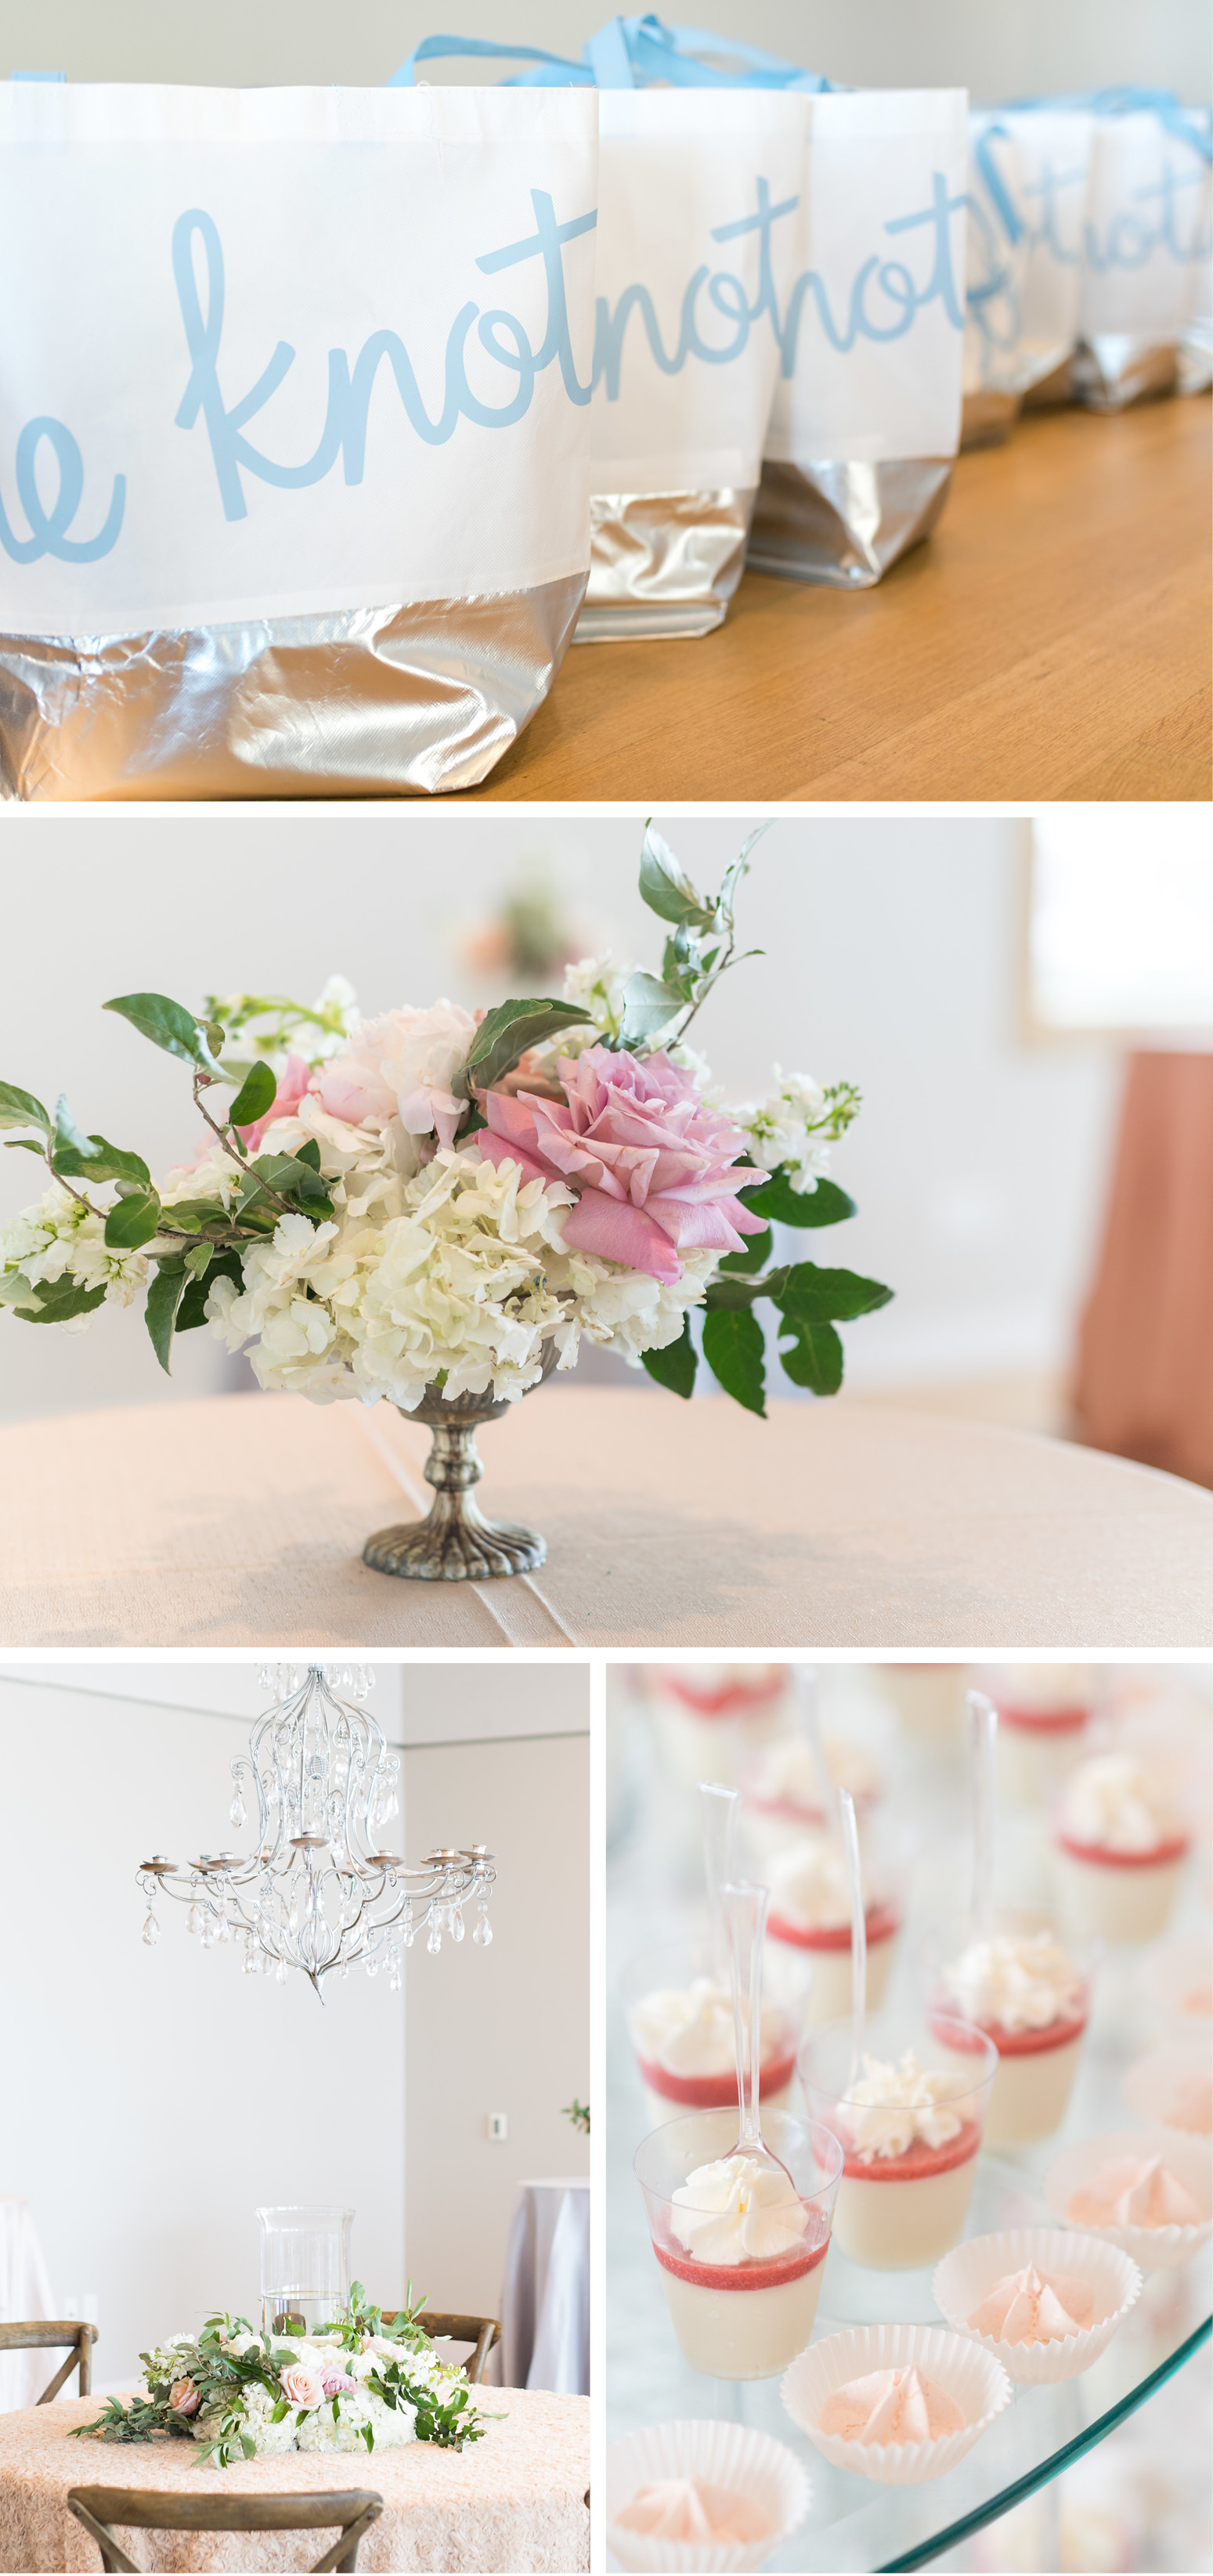 The-Knot-Pro-Charlotte-Mixer-Charlotte-Wedding-Professionals-Wedding-Stationer10.jpg